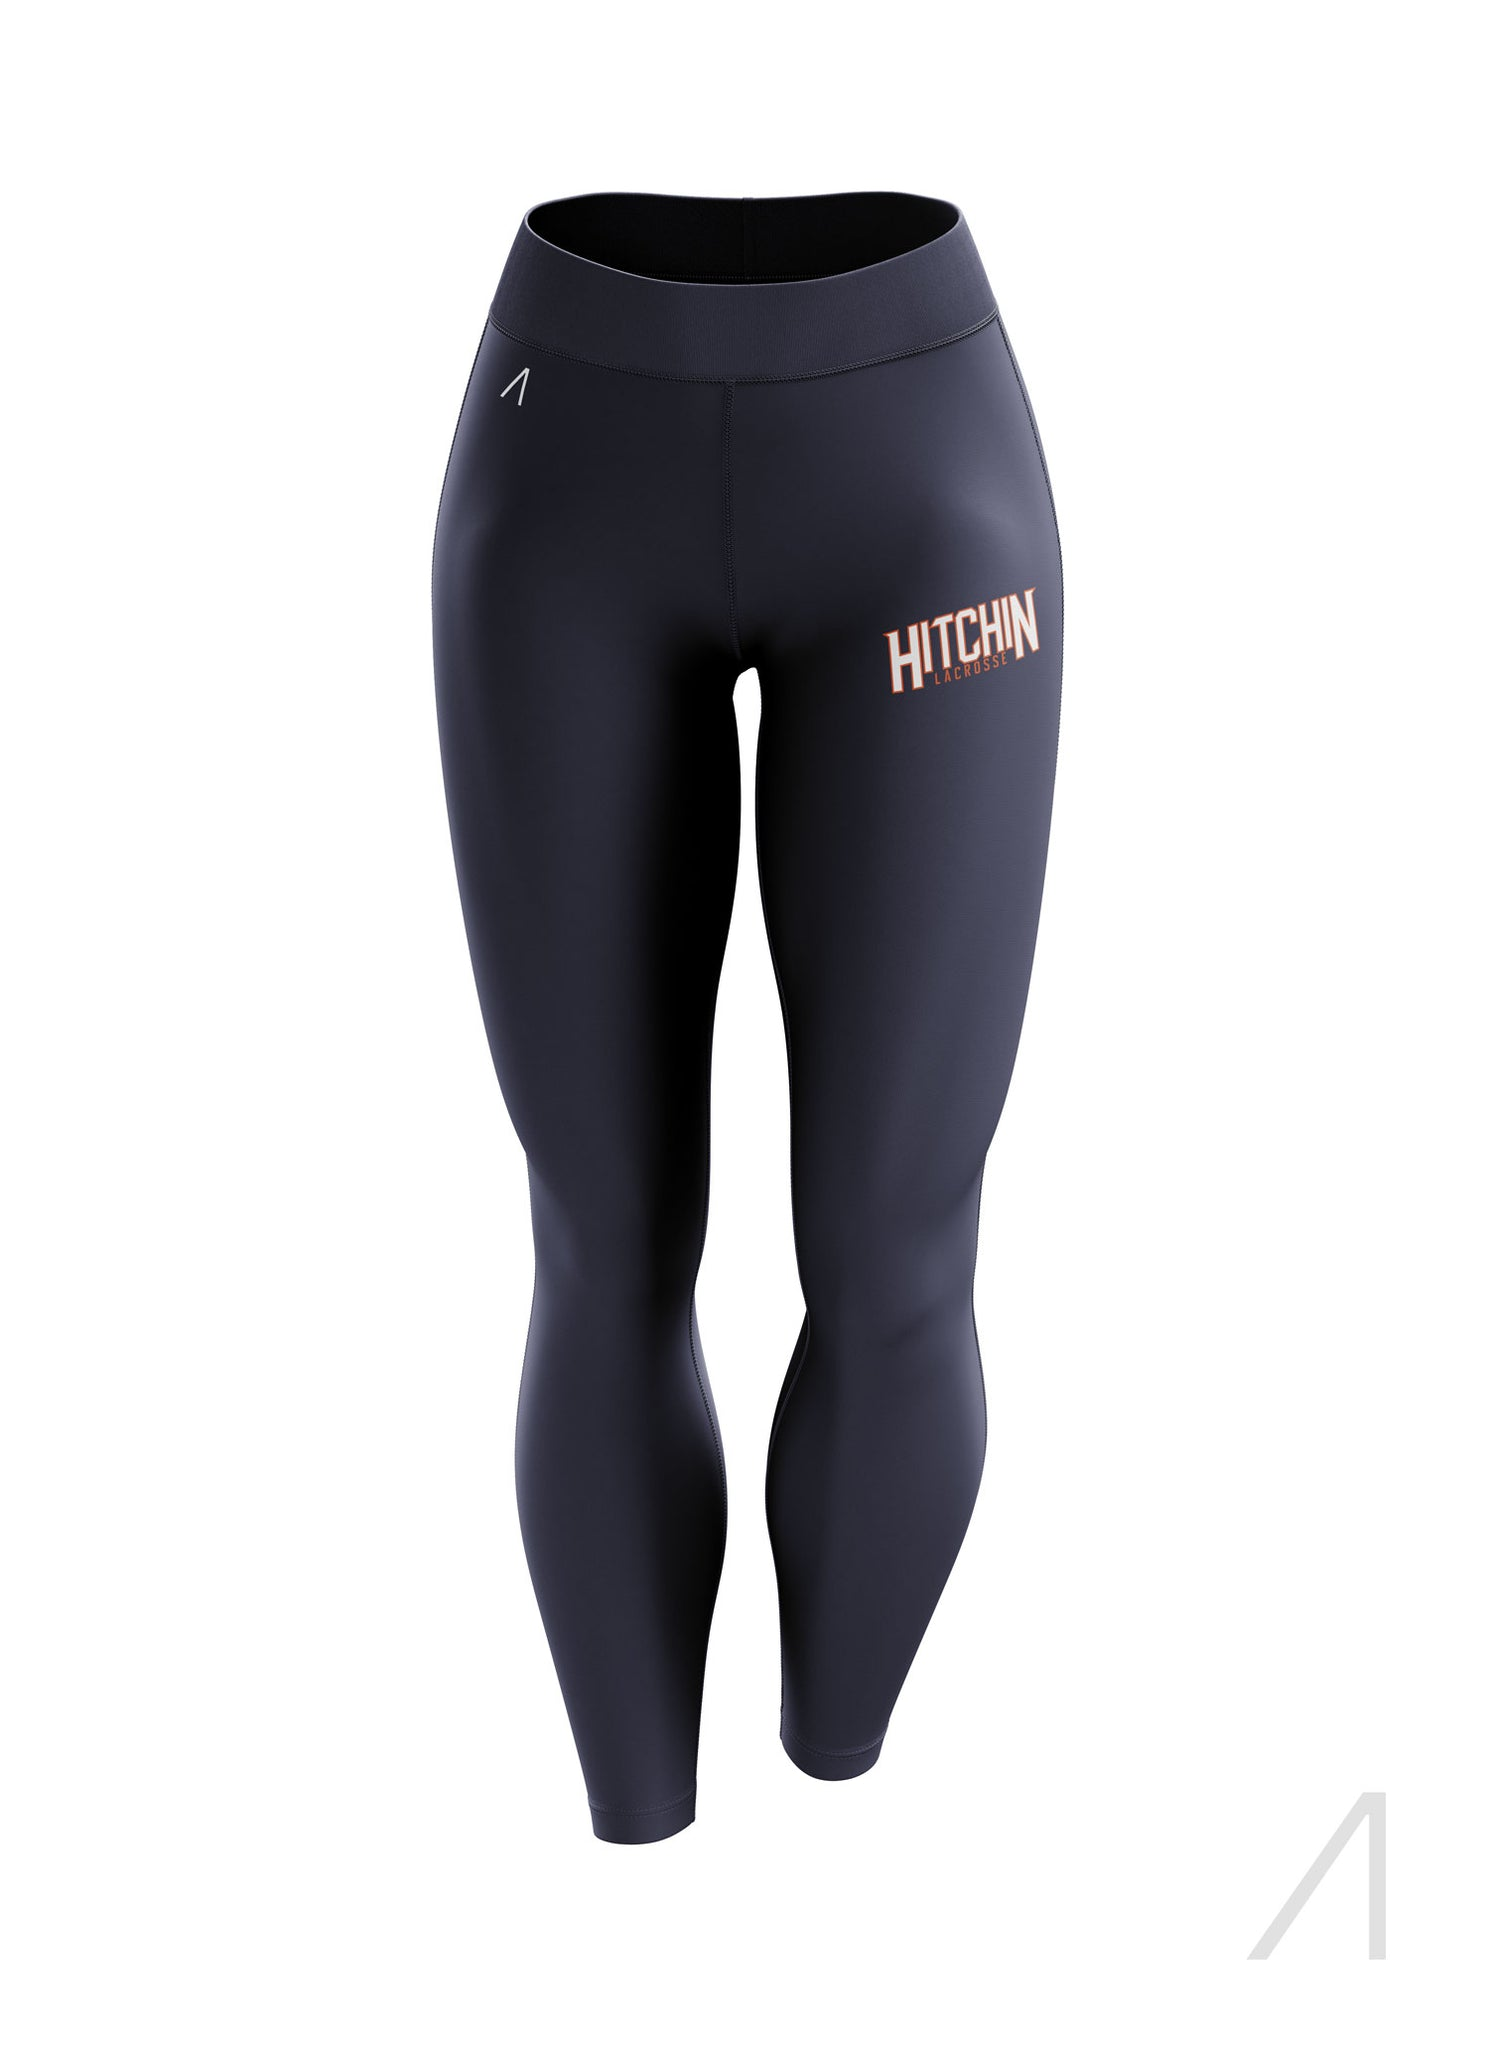 Hitchin womens leggings